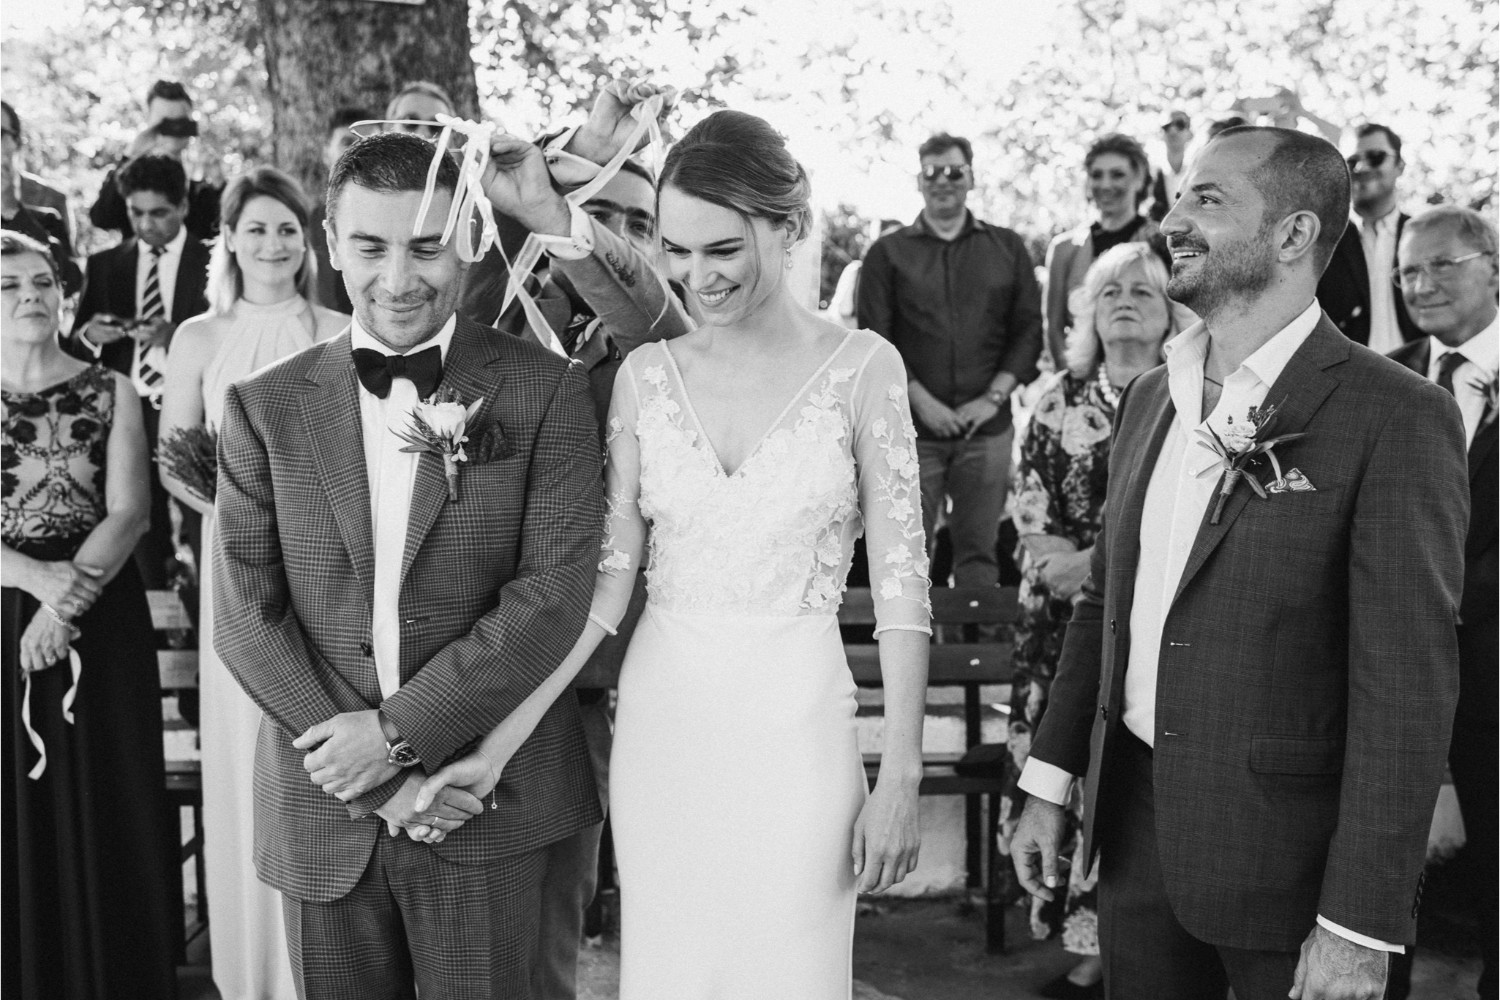 bride & groom at church wedding ceremony in Crete